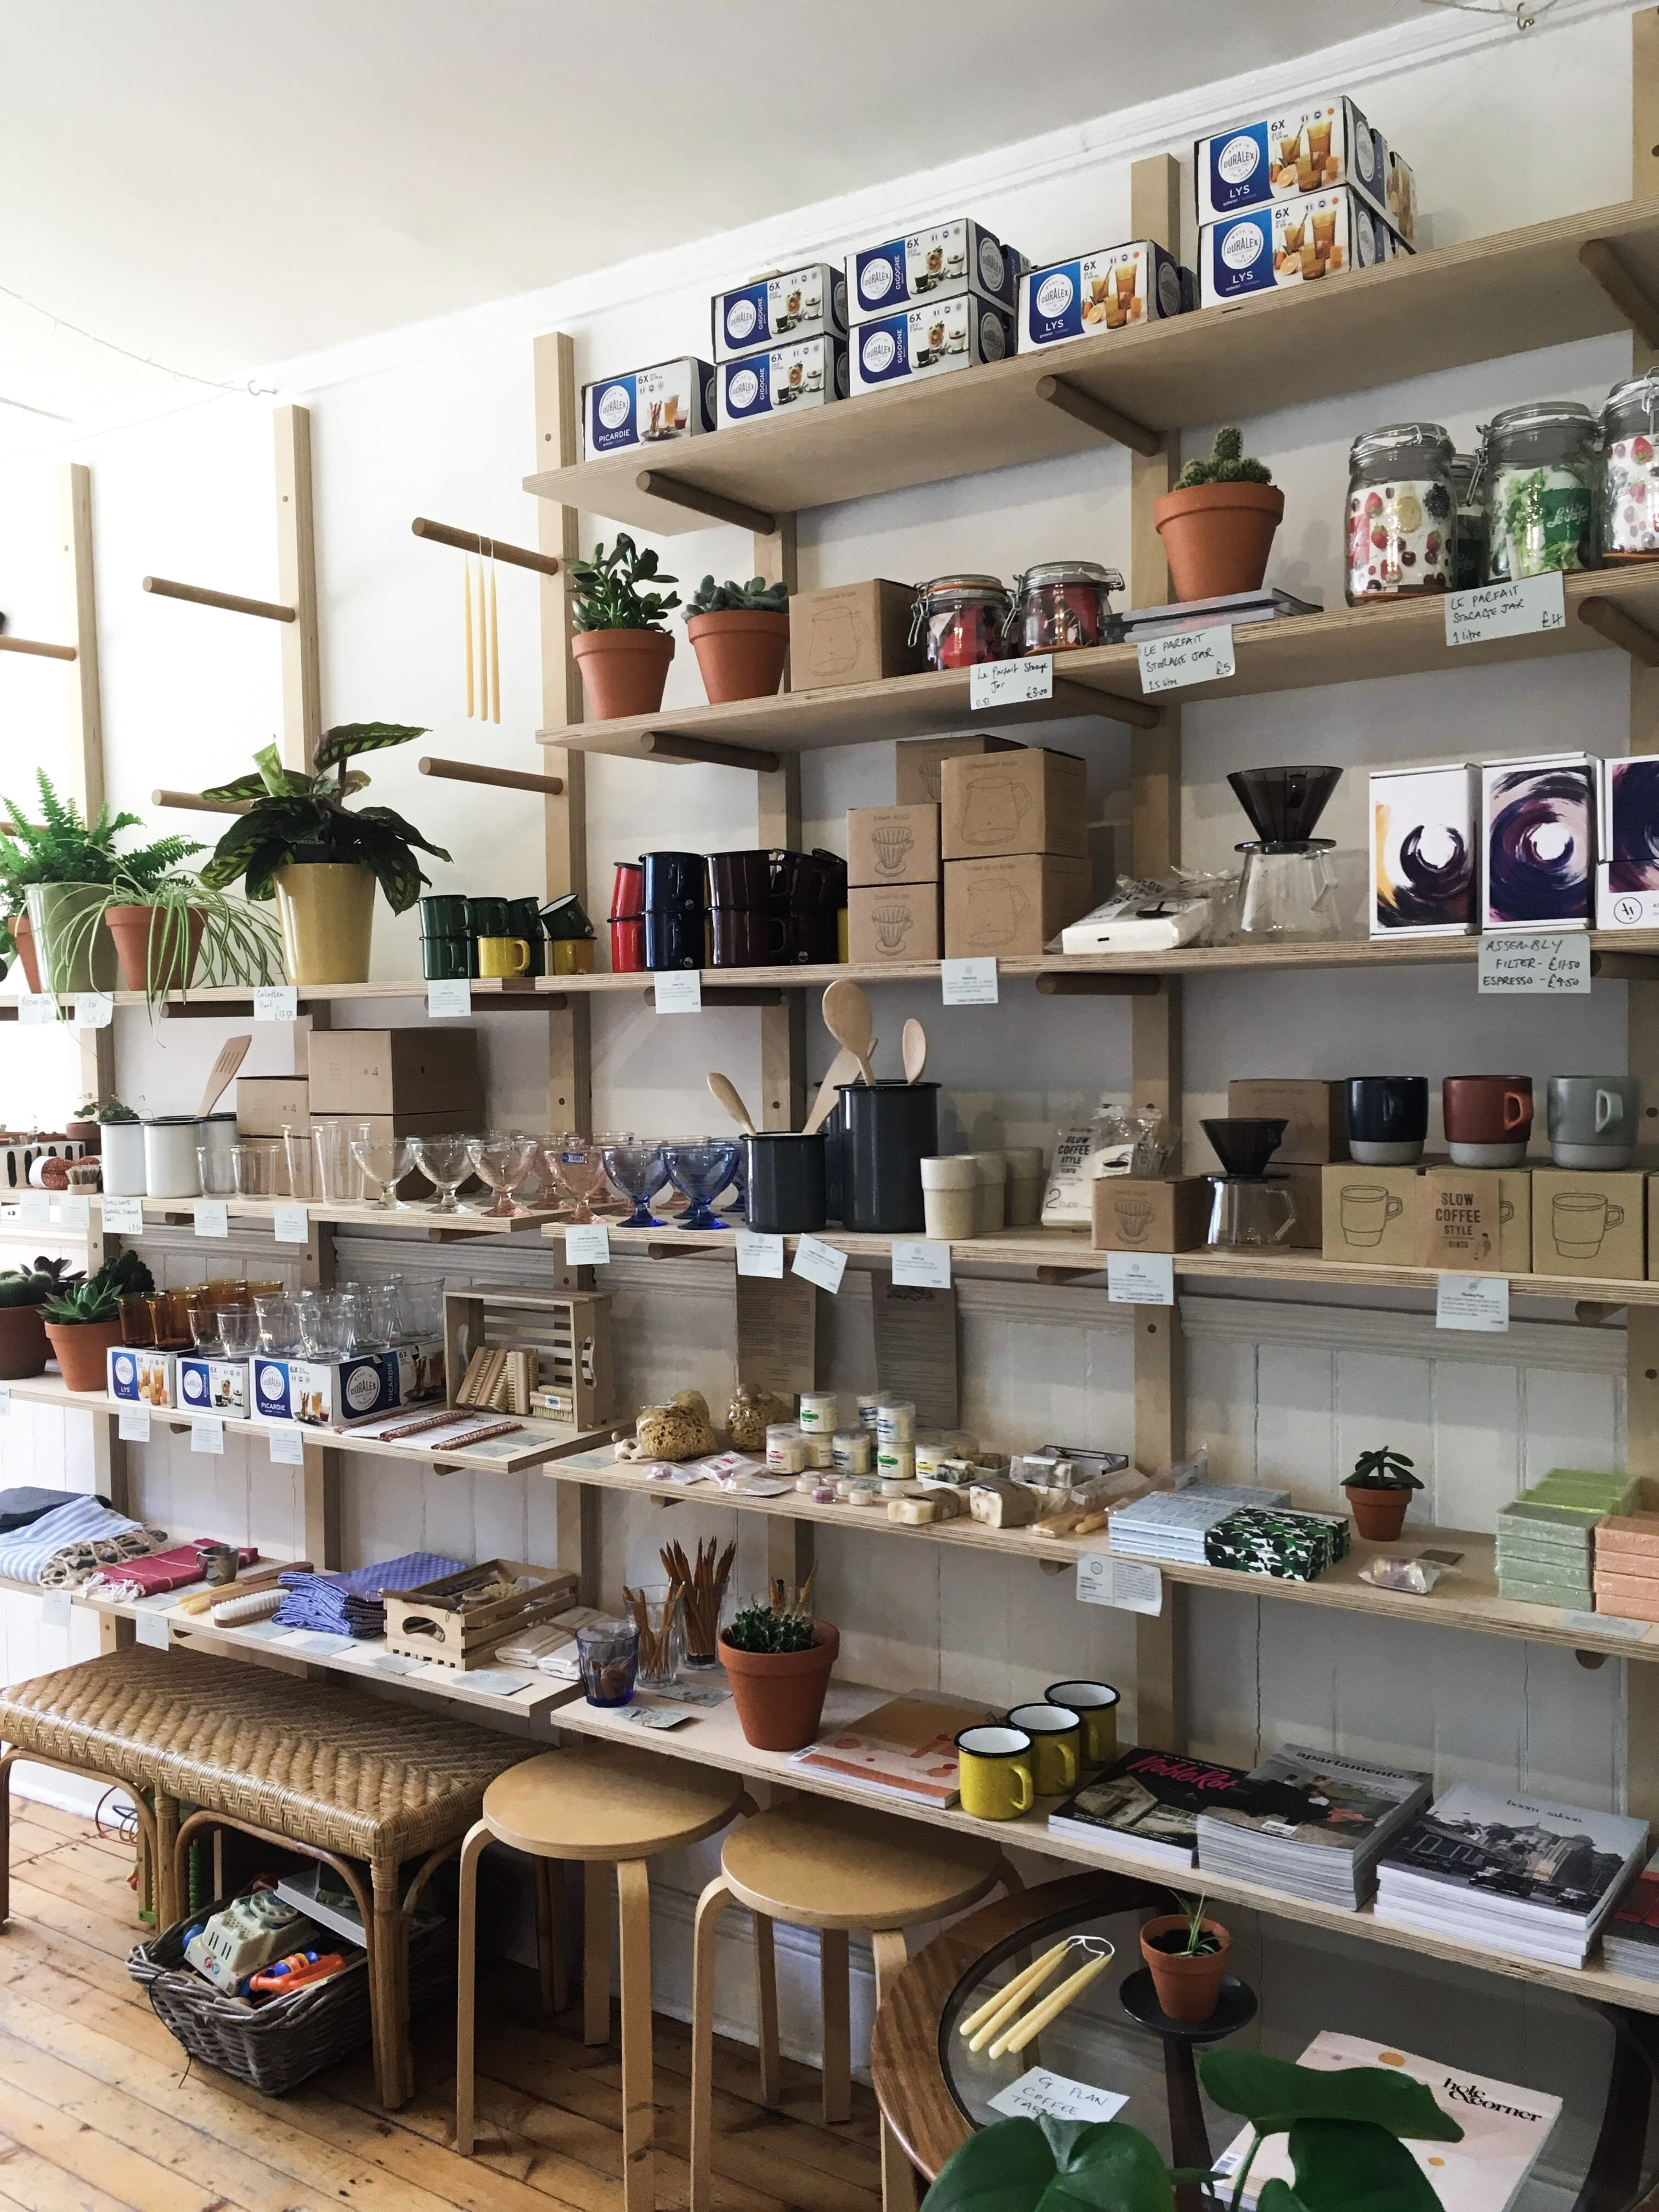 My Favourite Places to Plant Shop in Edinburgh: Century General Store